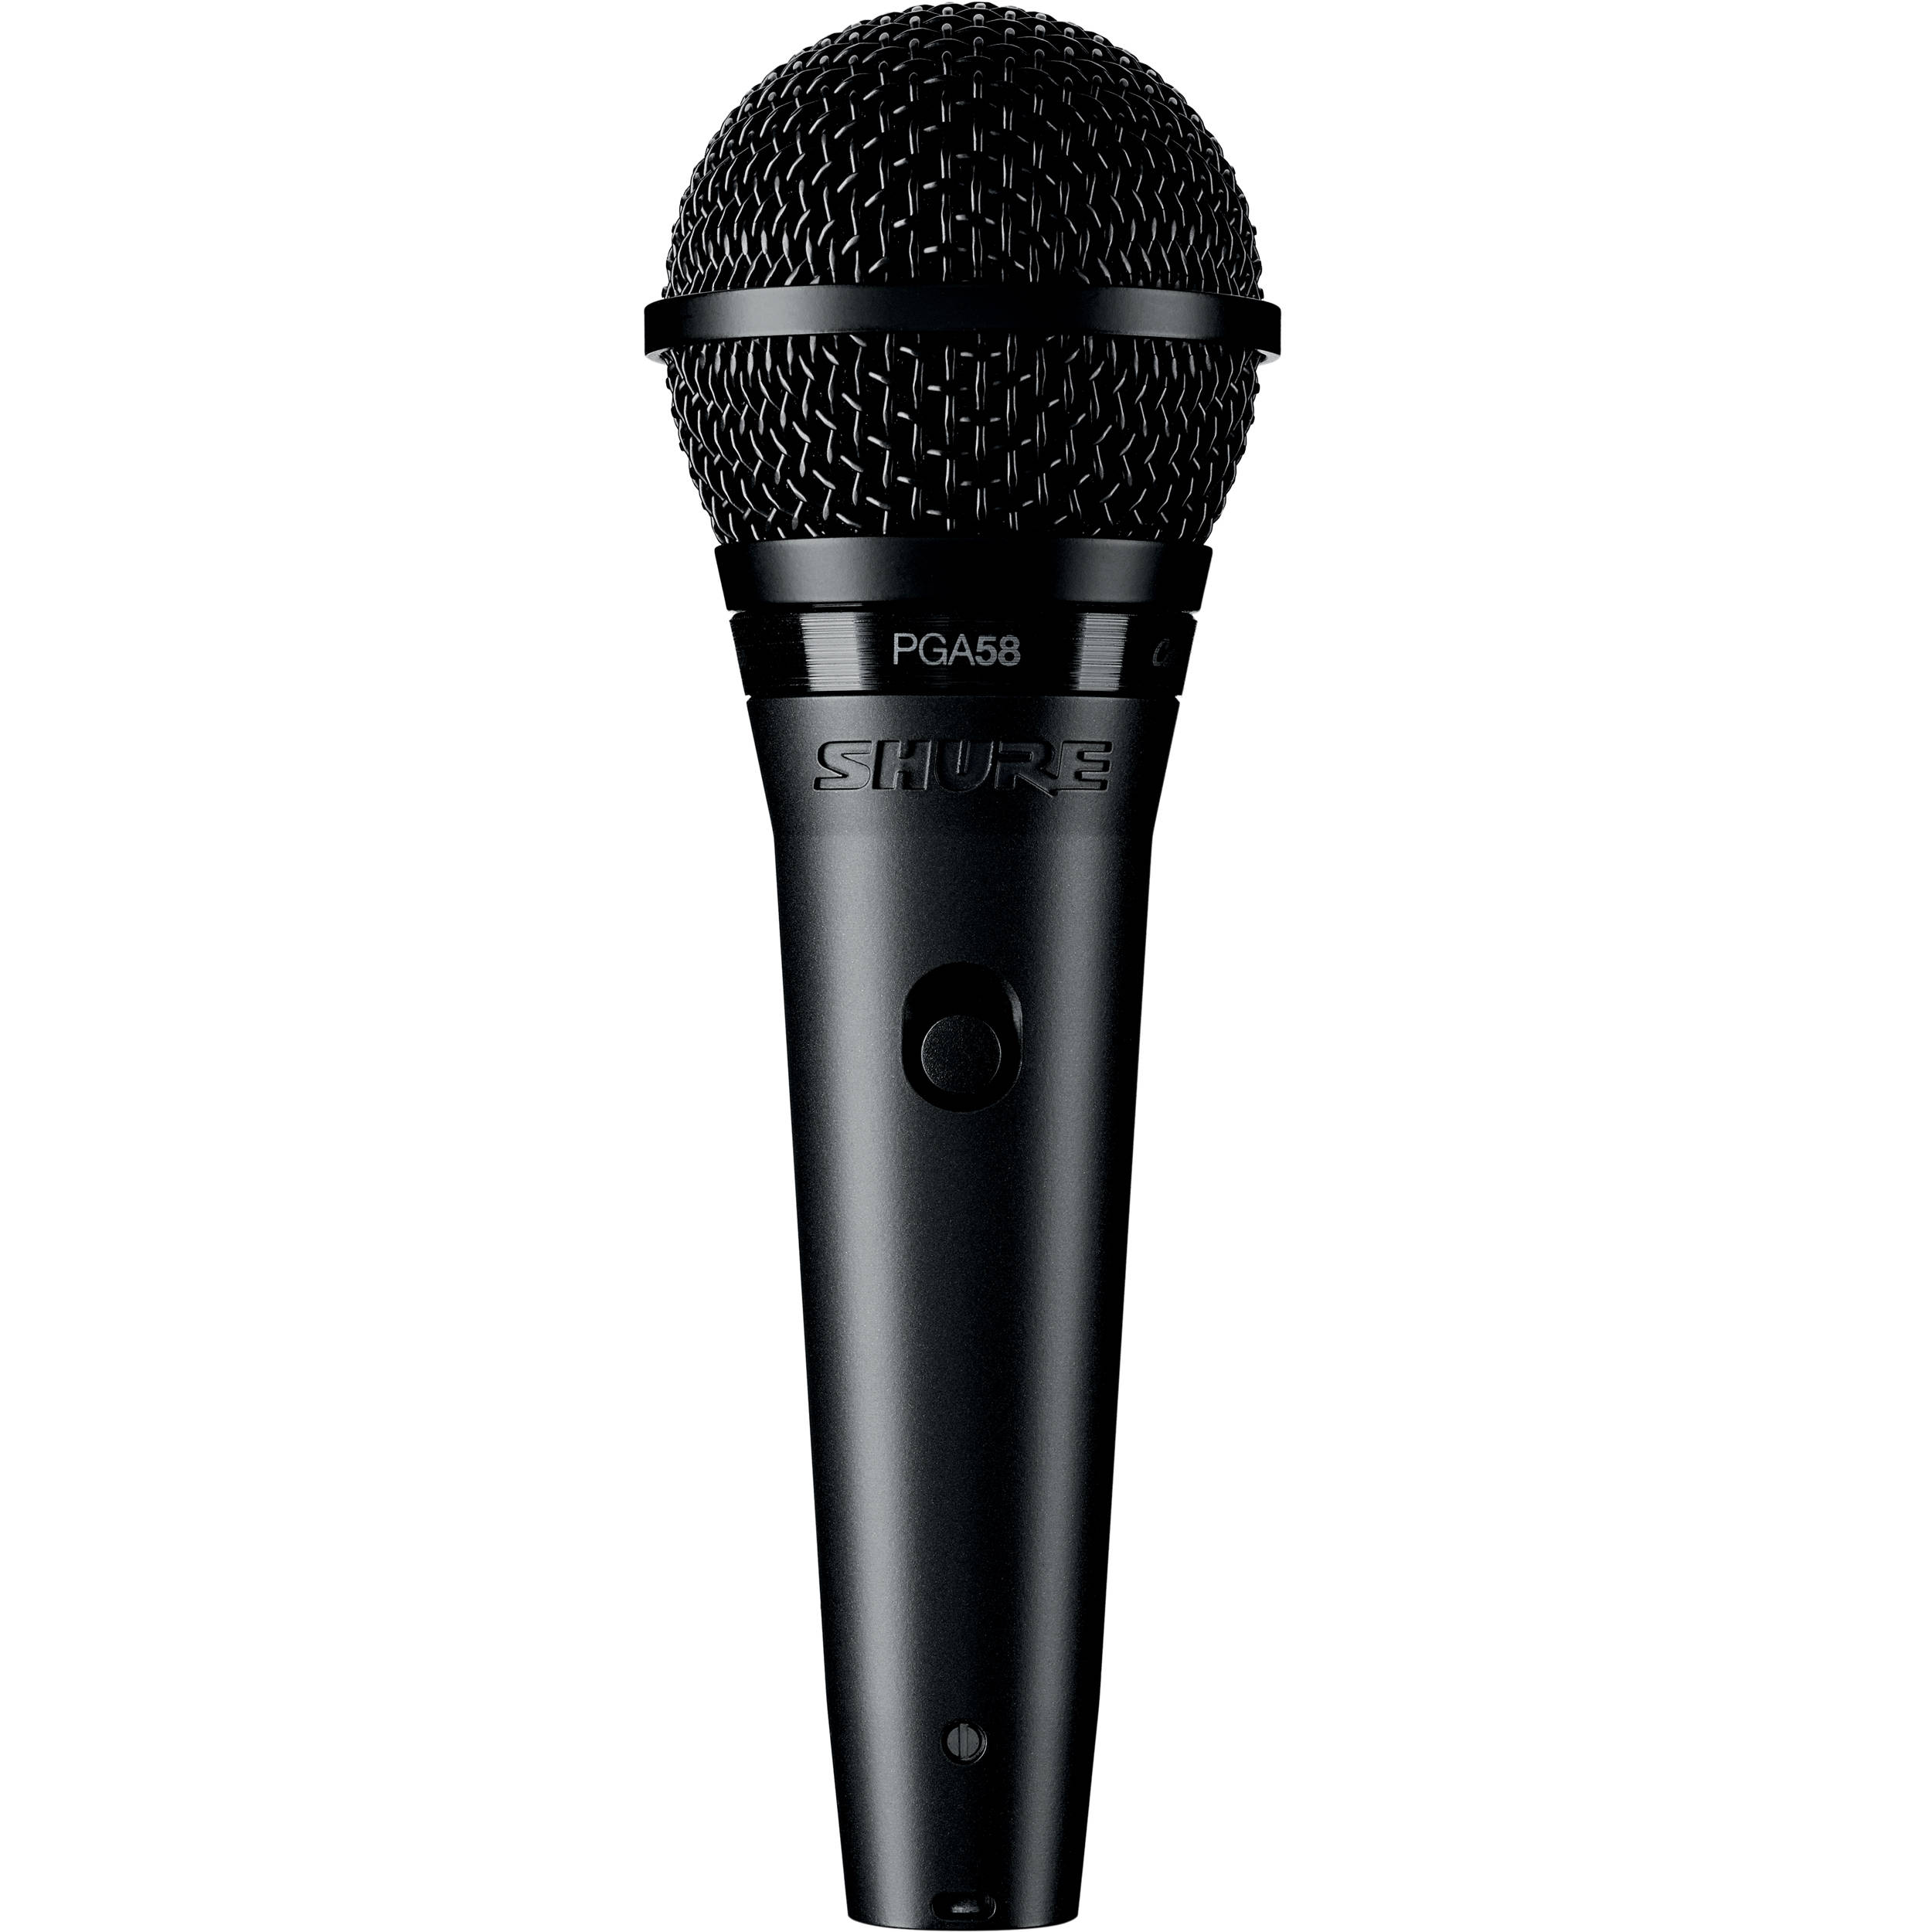 DURABLE DYNAMIC HIGH QUALITY SEMI-PROFESSIONAL XLR MICROPHONE OUT OF BOX